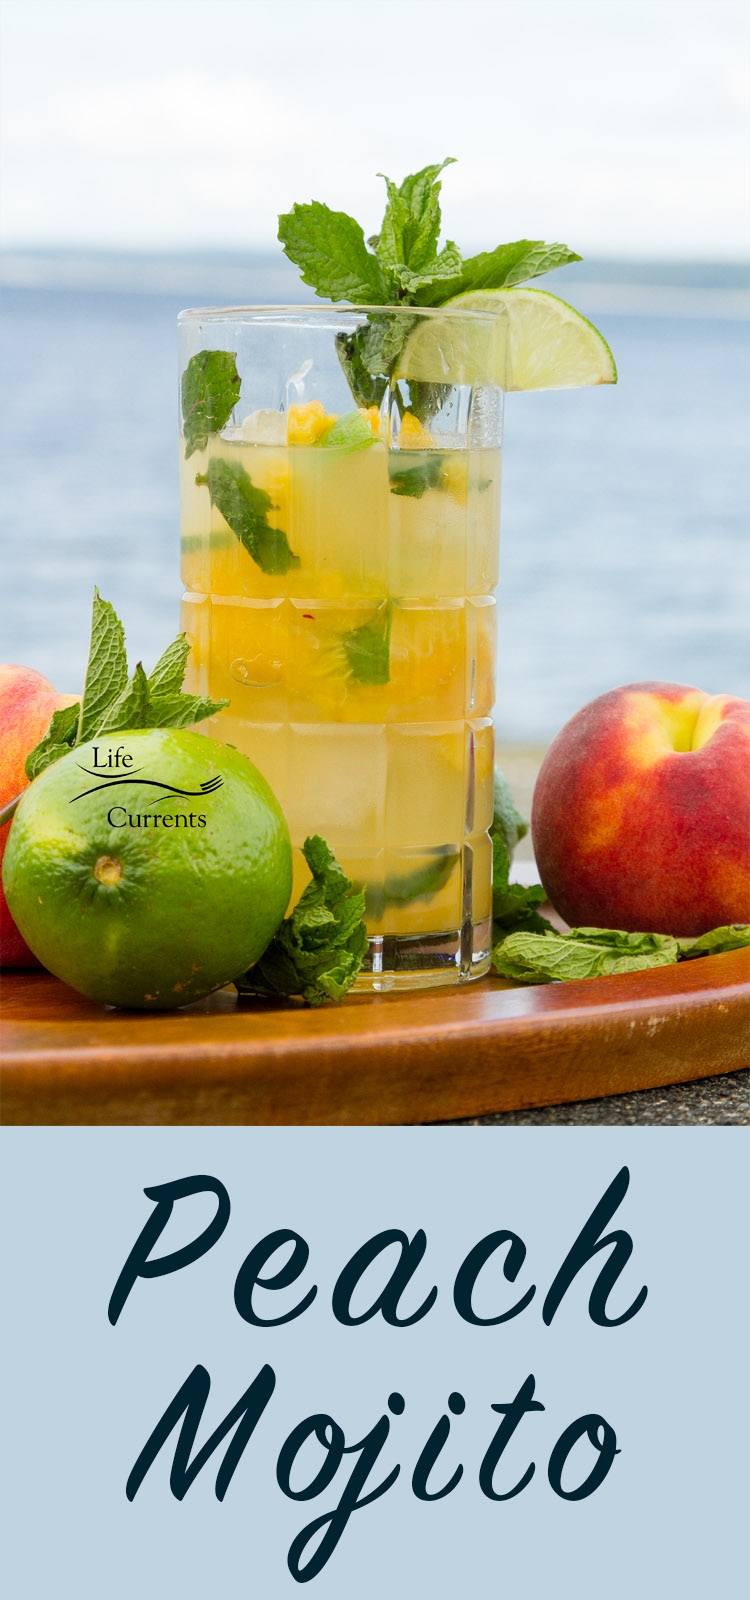 Peach Mojito - nothing better than enjoying a refreshing summer peach mojito drink poolside or at the beach - fresh peaches, mint and rum!